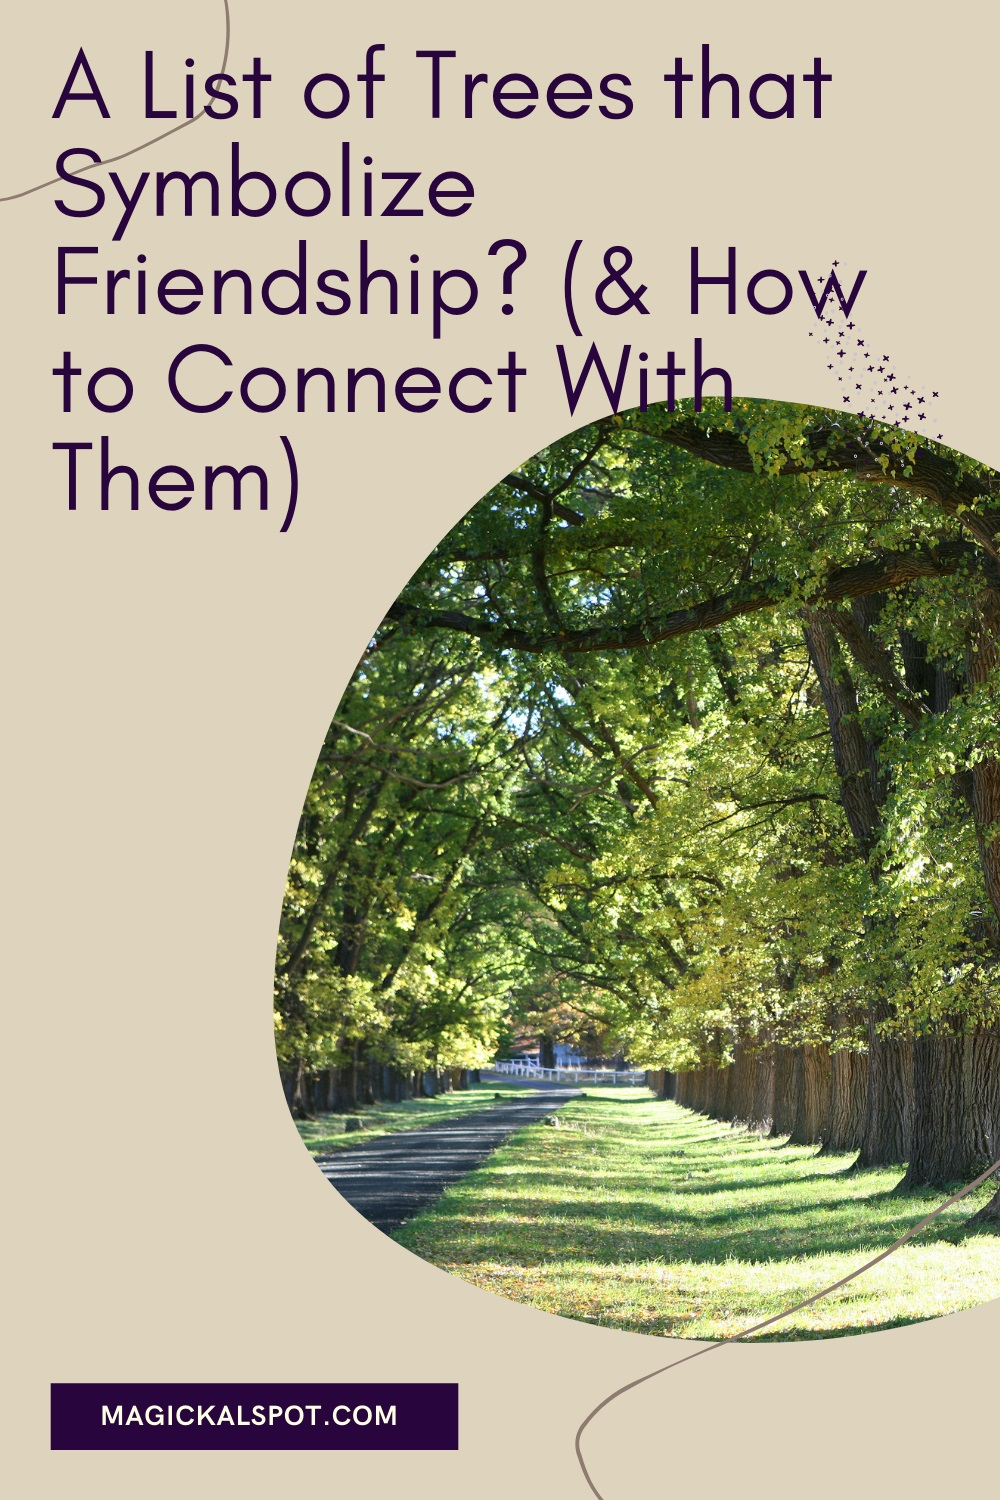 A List of Trees that Symbolize Friendship by Magickal Spot